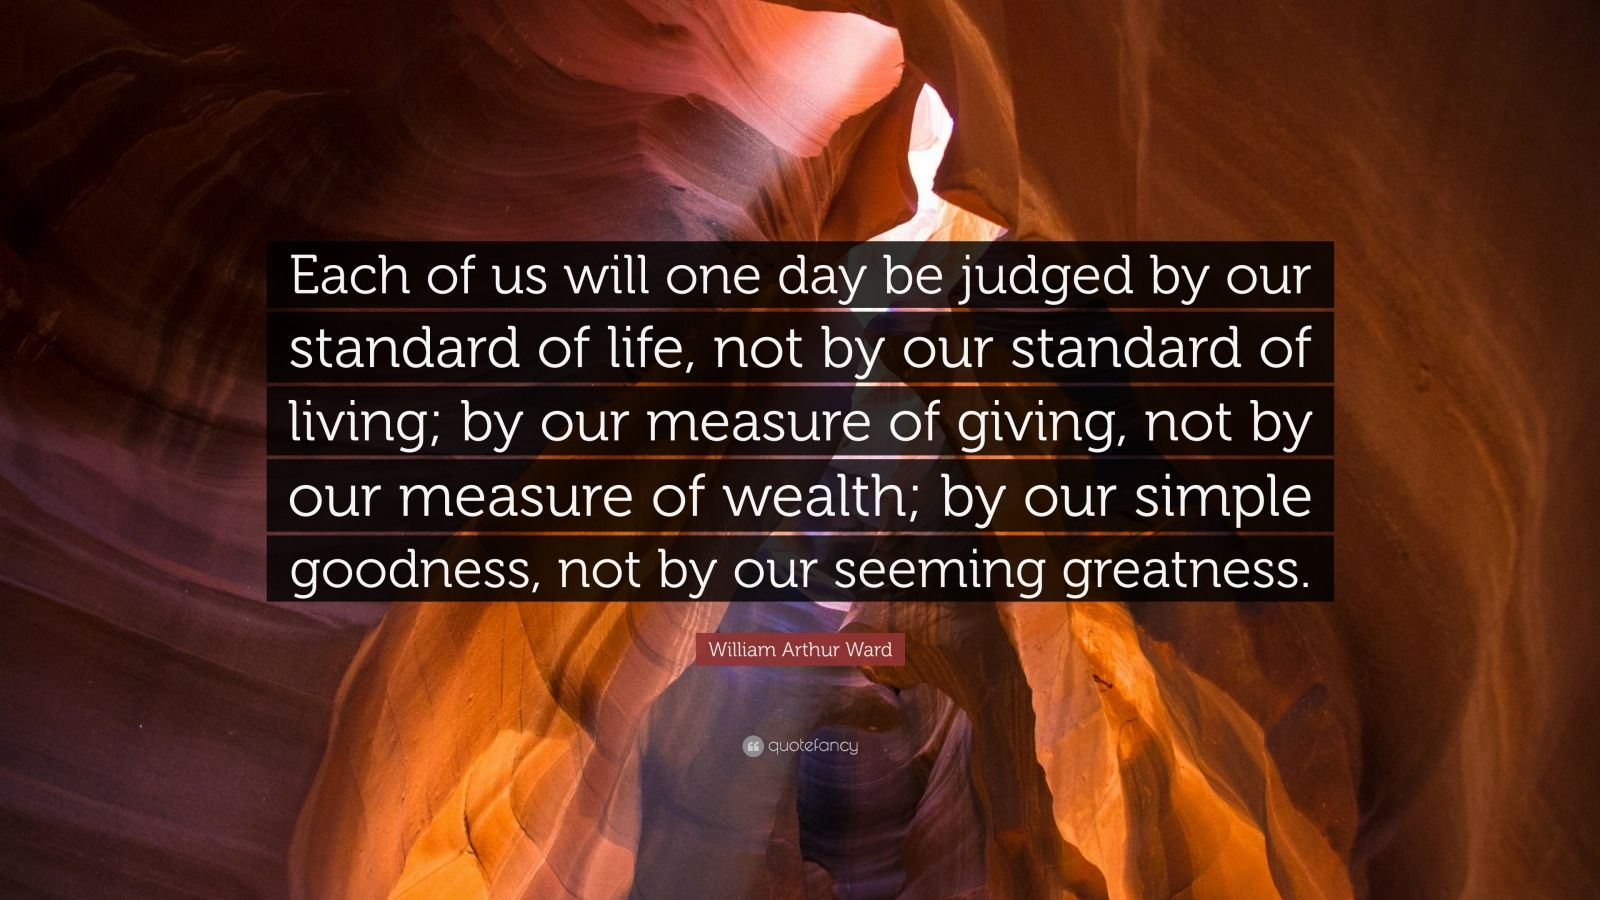 "William Arthur Ward Quote: ""Each of us will one day be judged by our standard of life, not by our standard of living; by our measure of giving, not by our measure of wealth; by our simple goodness, not by our seeming greatness."""